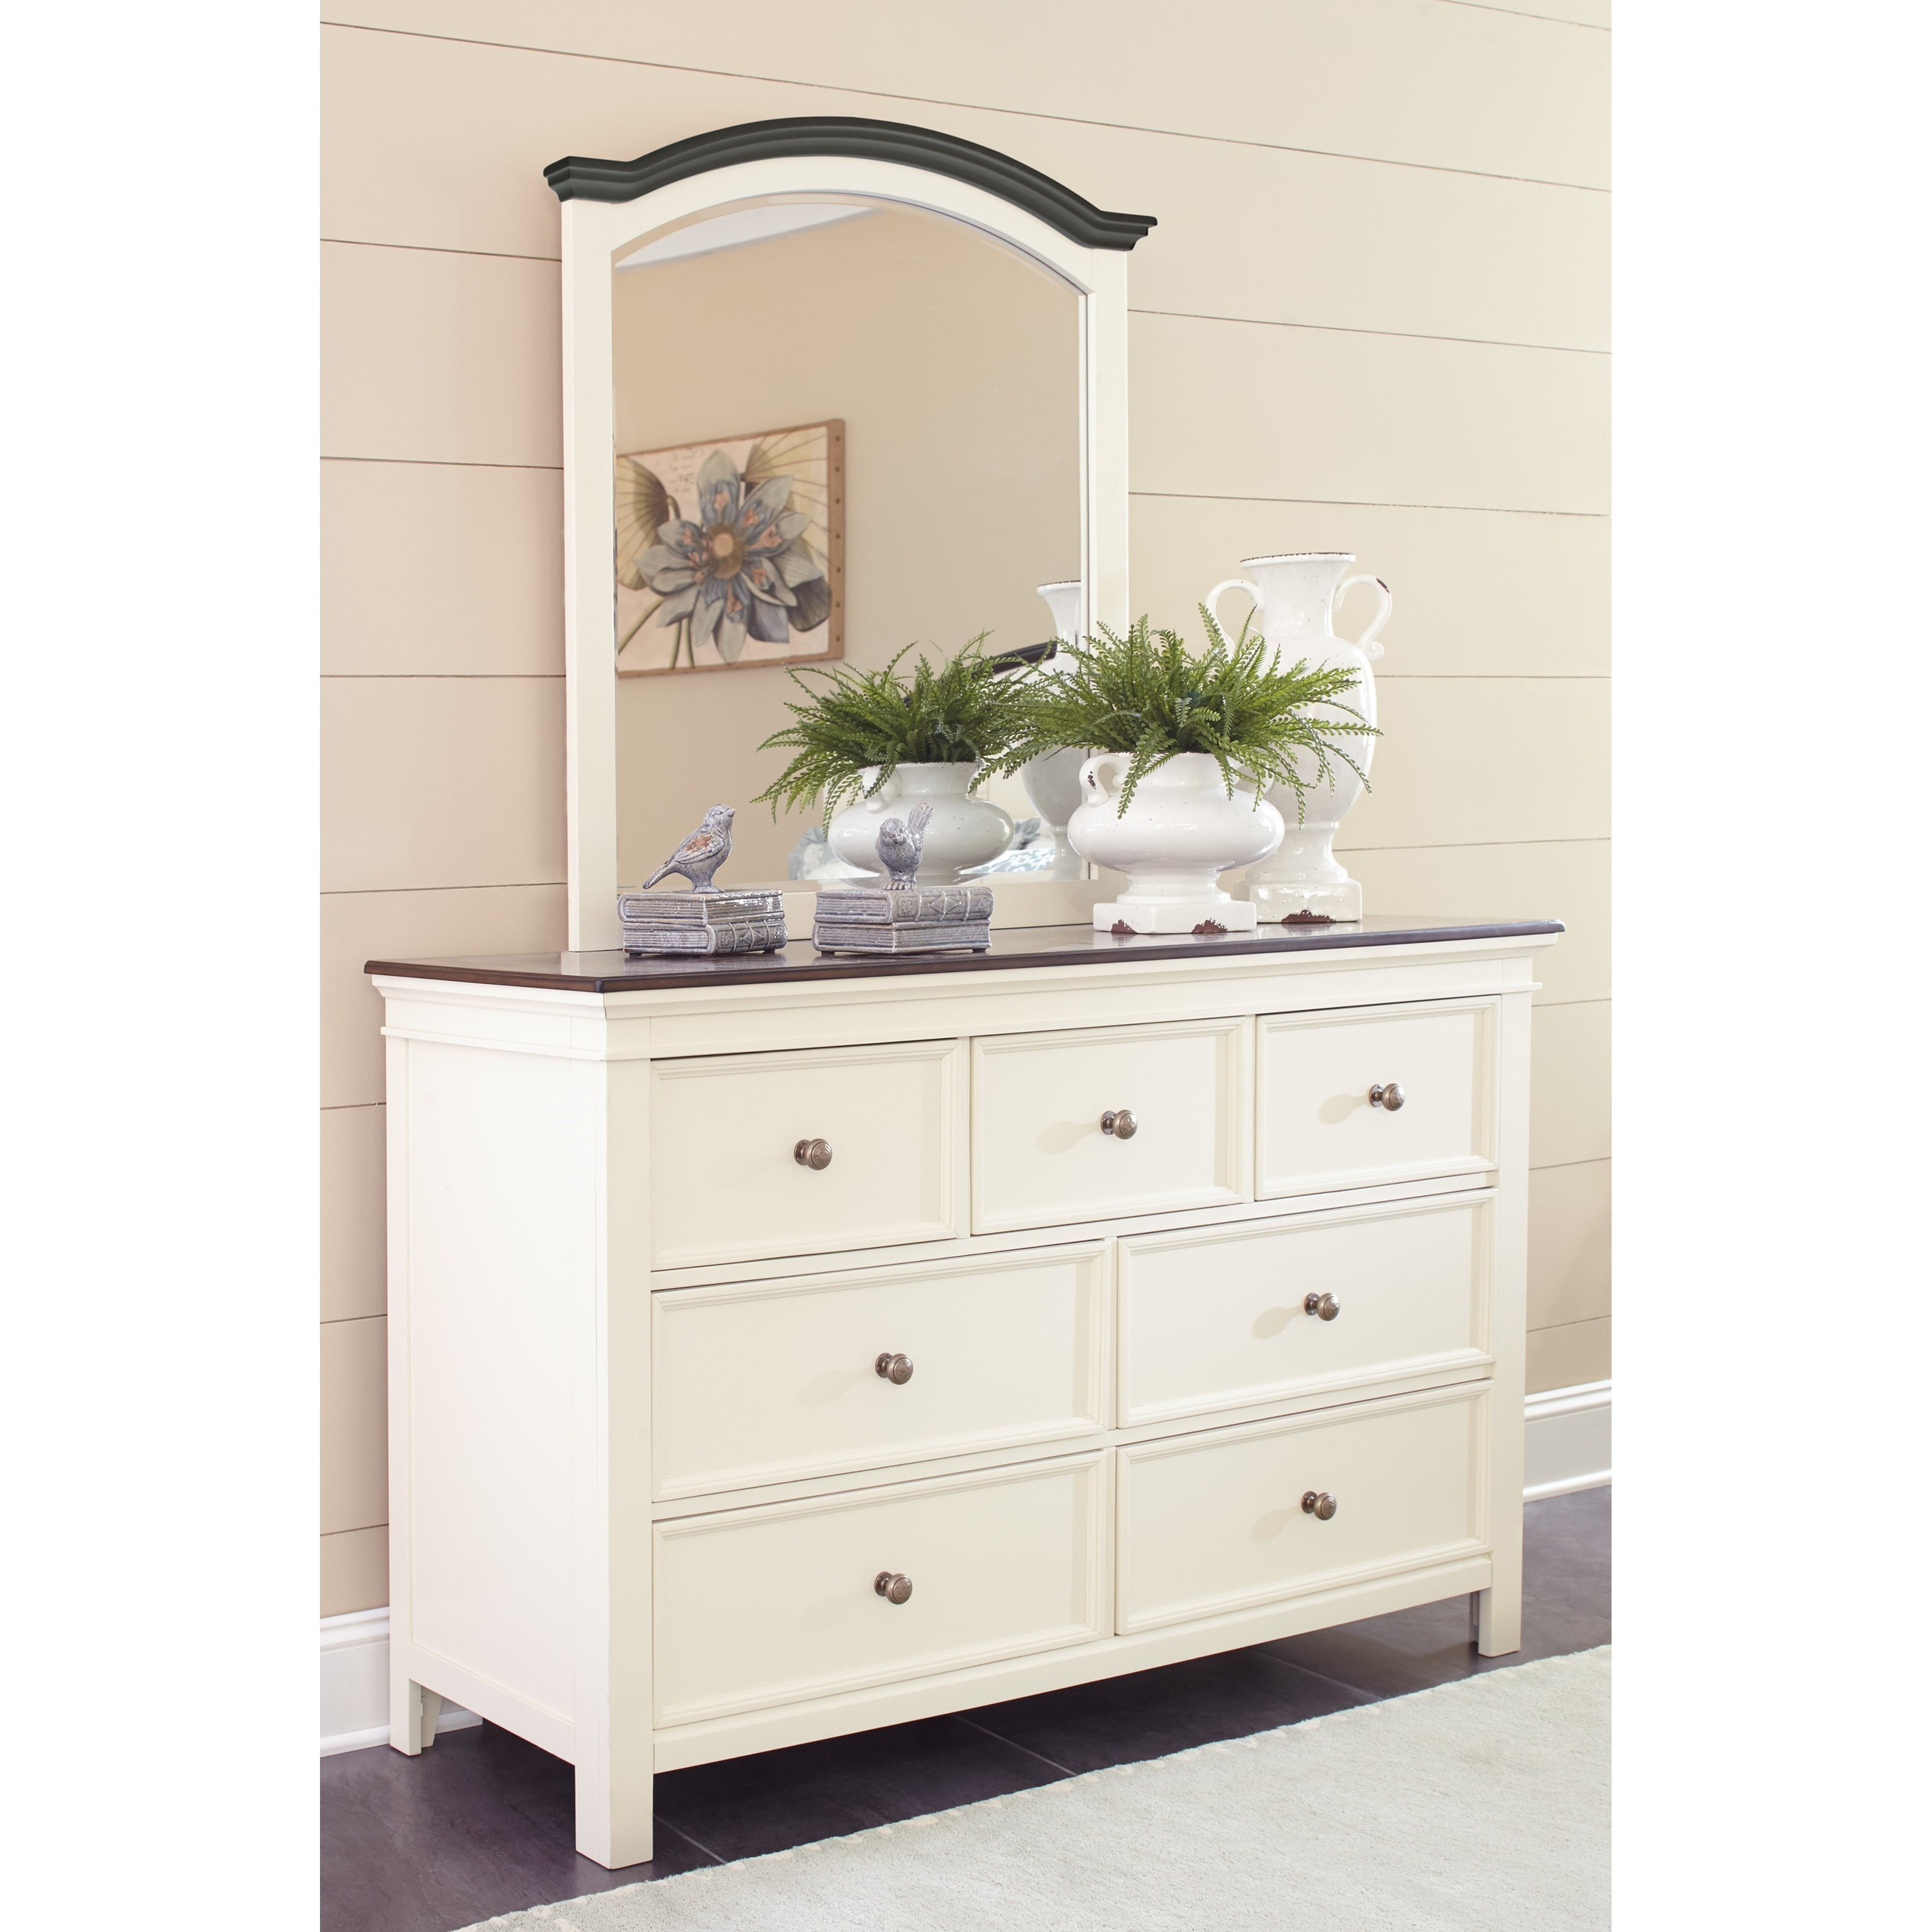 Bedroom Dressers With Mirrors: Signature Design By Ashley Woodanville Cottage Style